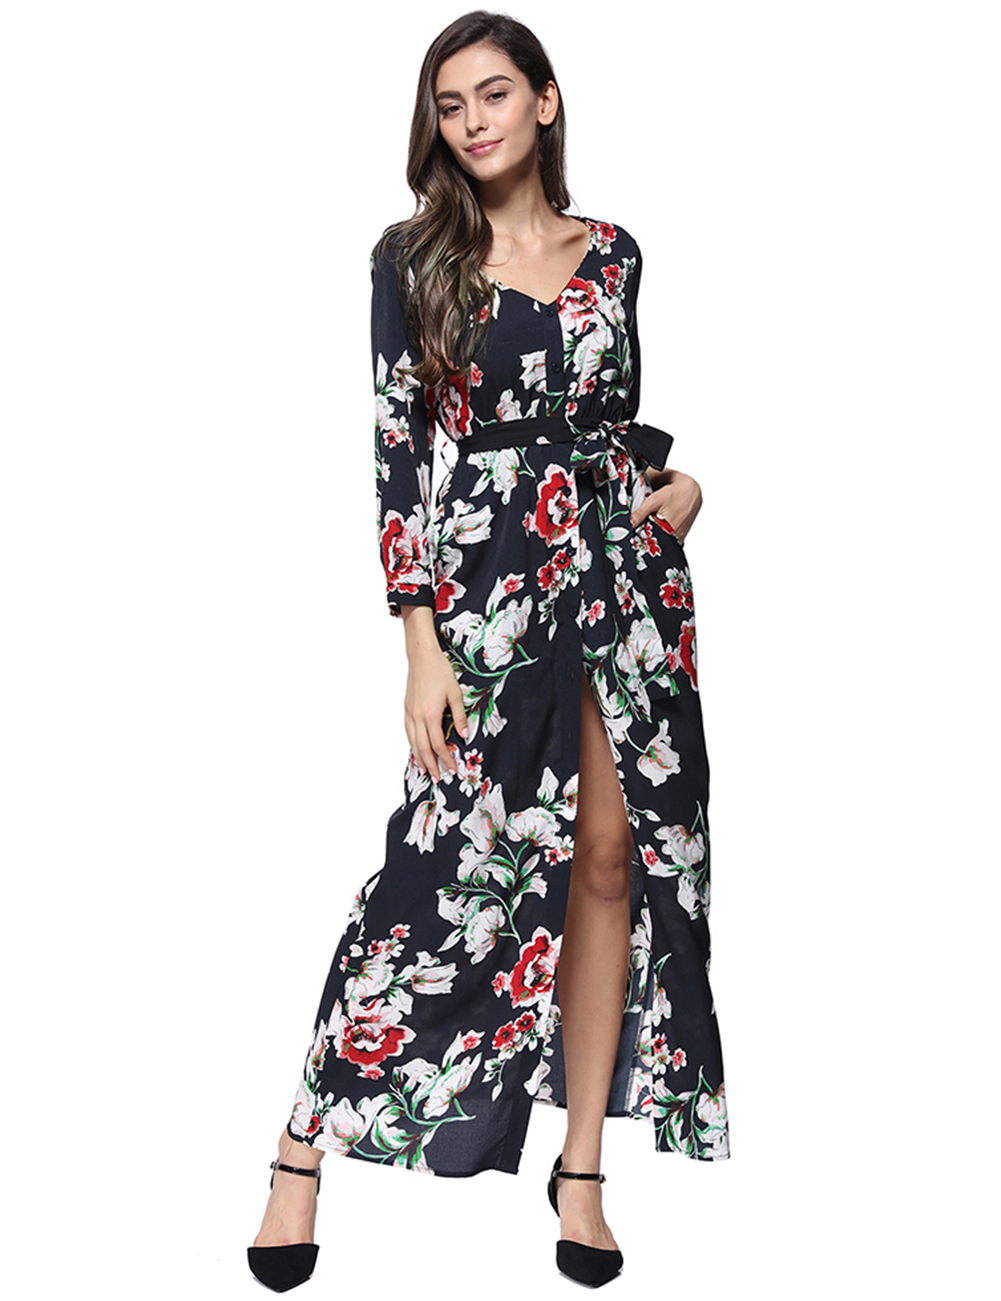 //cdn.affectcloud.com/feelingirldress/upload/imgs/2019-06-04/VZ190459-M04/VZ190459-M04-4.jpg